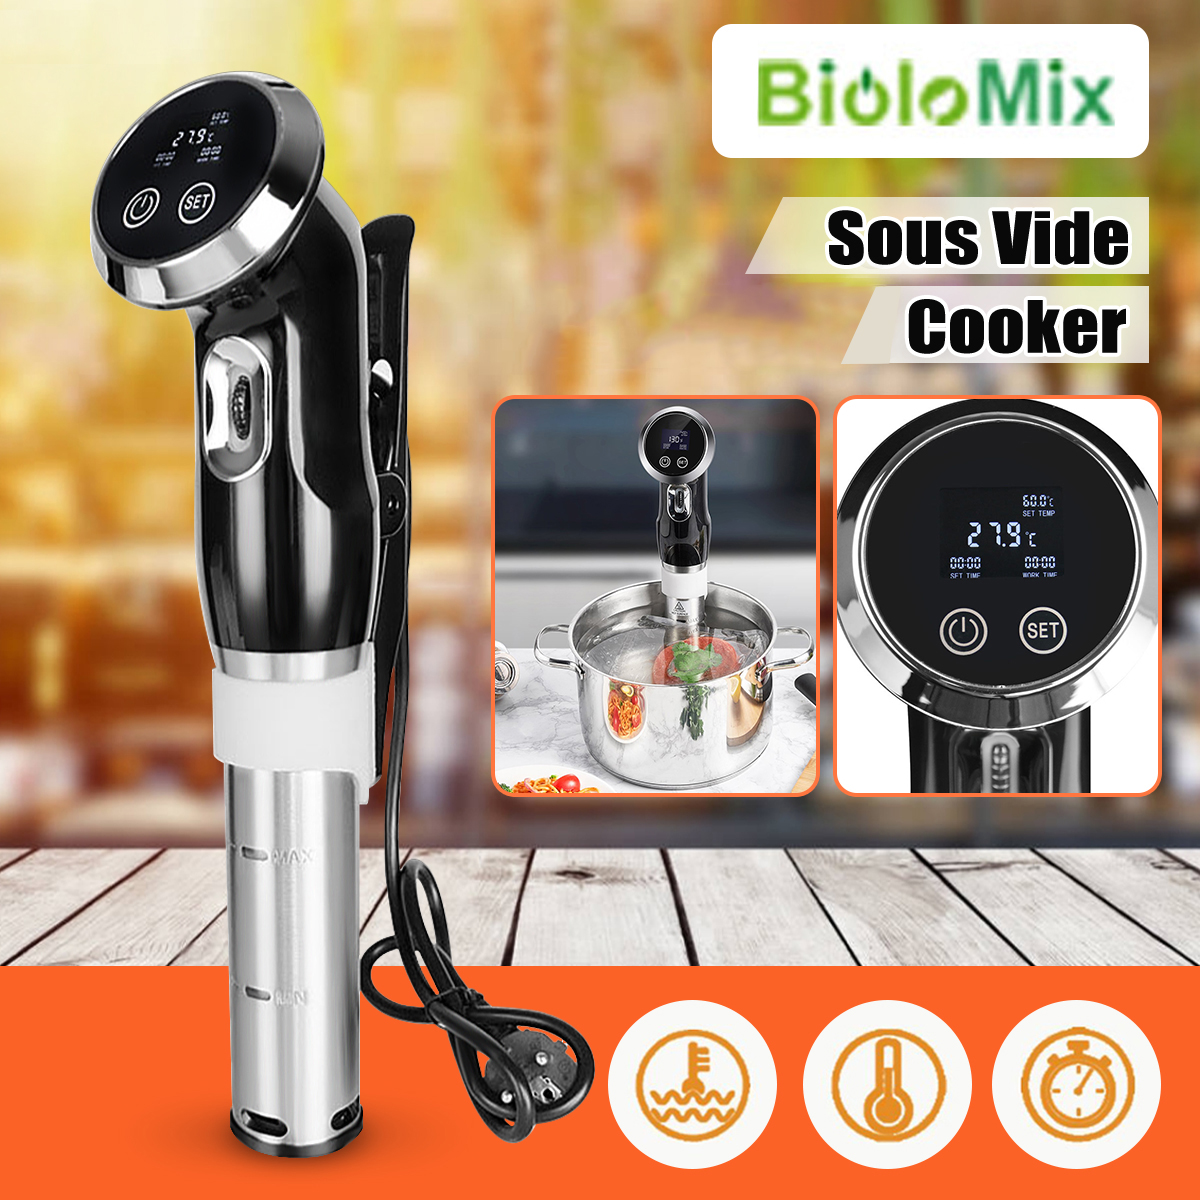 Bolomix Cooking Appliances Vacuum Slow Sous Vide Food Cooker Powerful Immersion Circulator LCD Digital Timer Stainless SteelBolomix Cooking Appliances Vacuum Slow Sous Vide Food Cooker Powerful Immersion Circulator LCD Digital Timer Stainless Steel